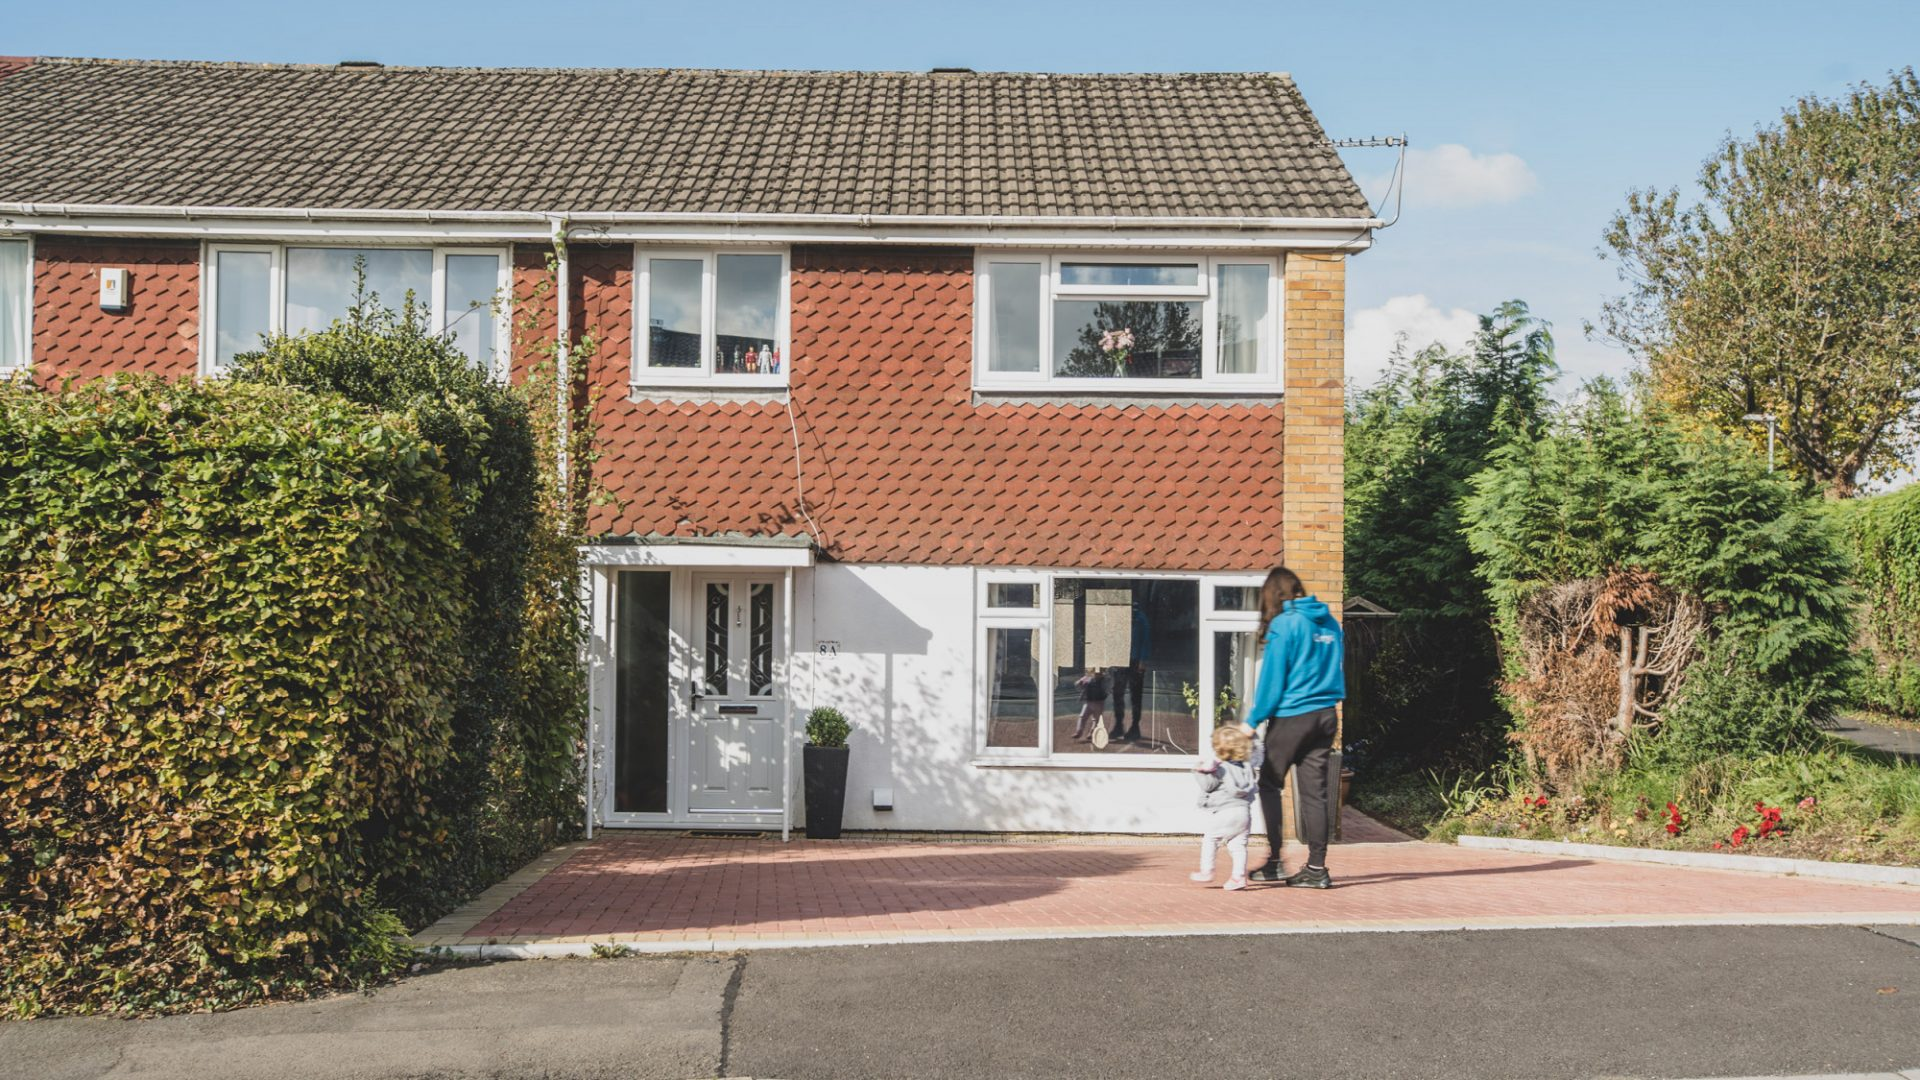 Ruskin Avenue, Newport for sale with Mr and Mrs Clarke estate agent